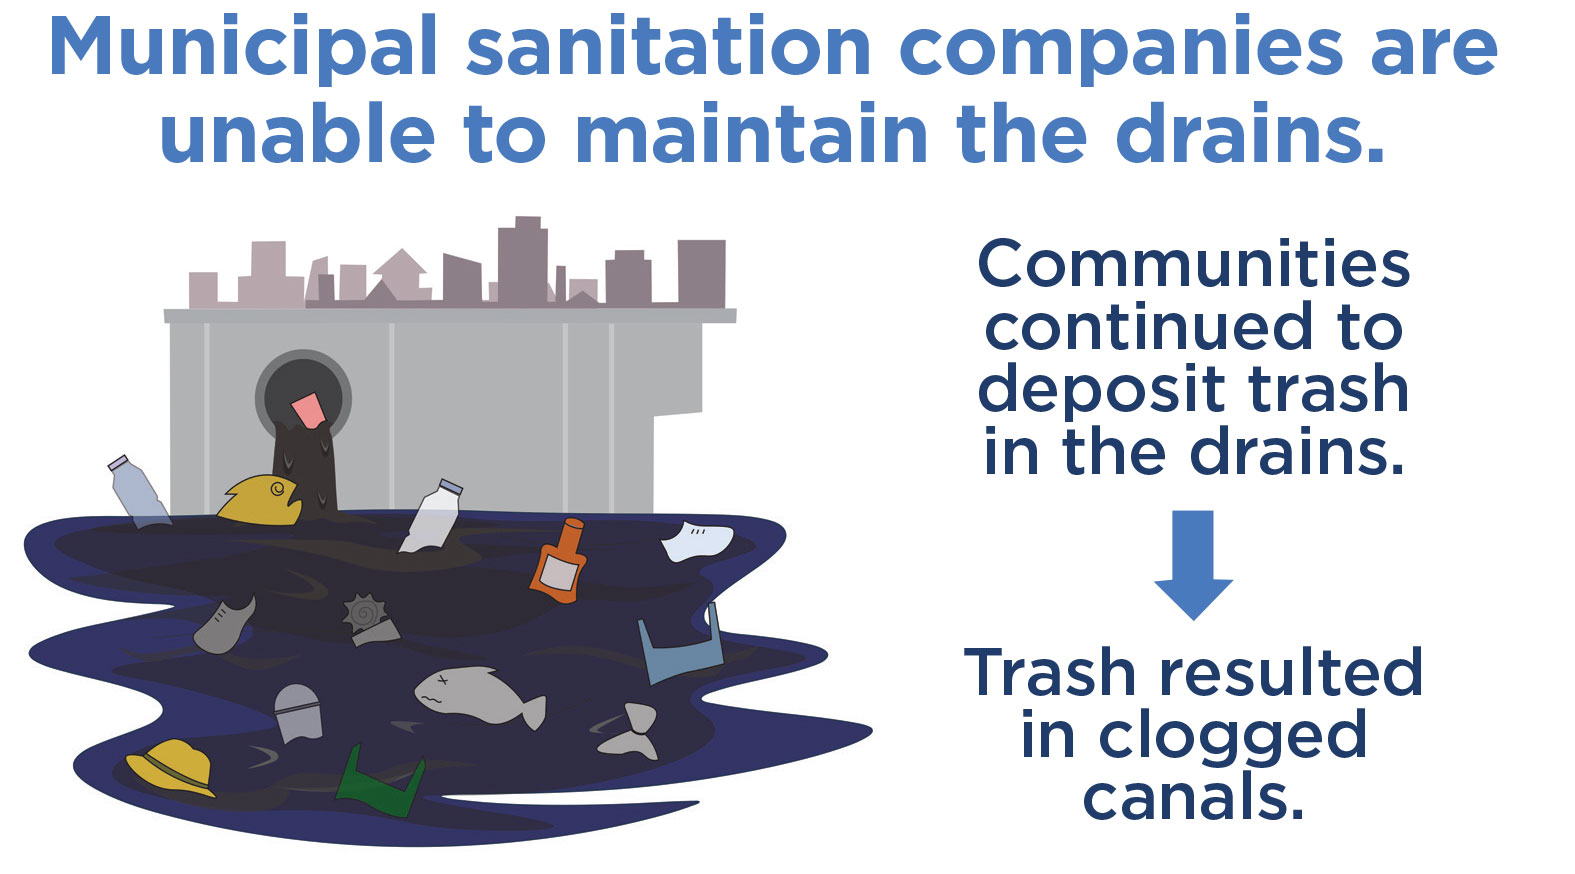 Municipal sanitation companies are unable to maintain the drains.